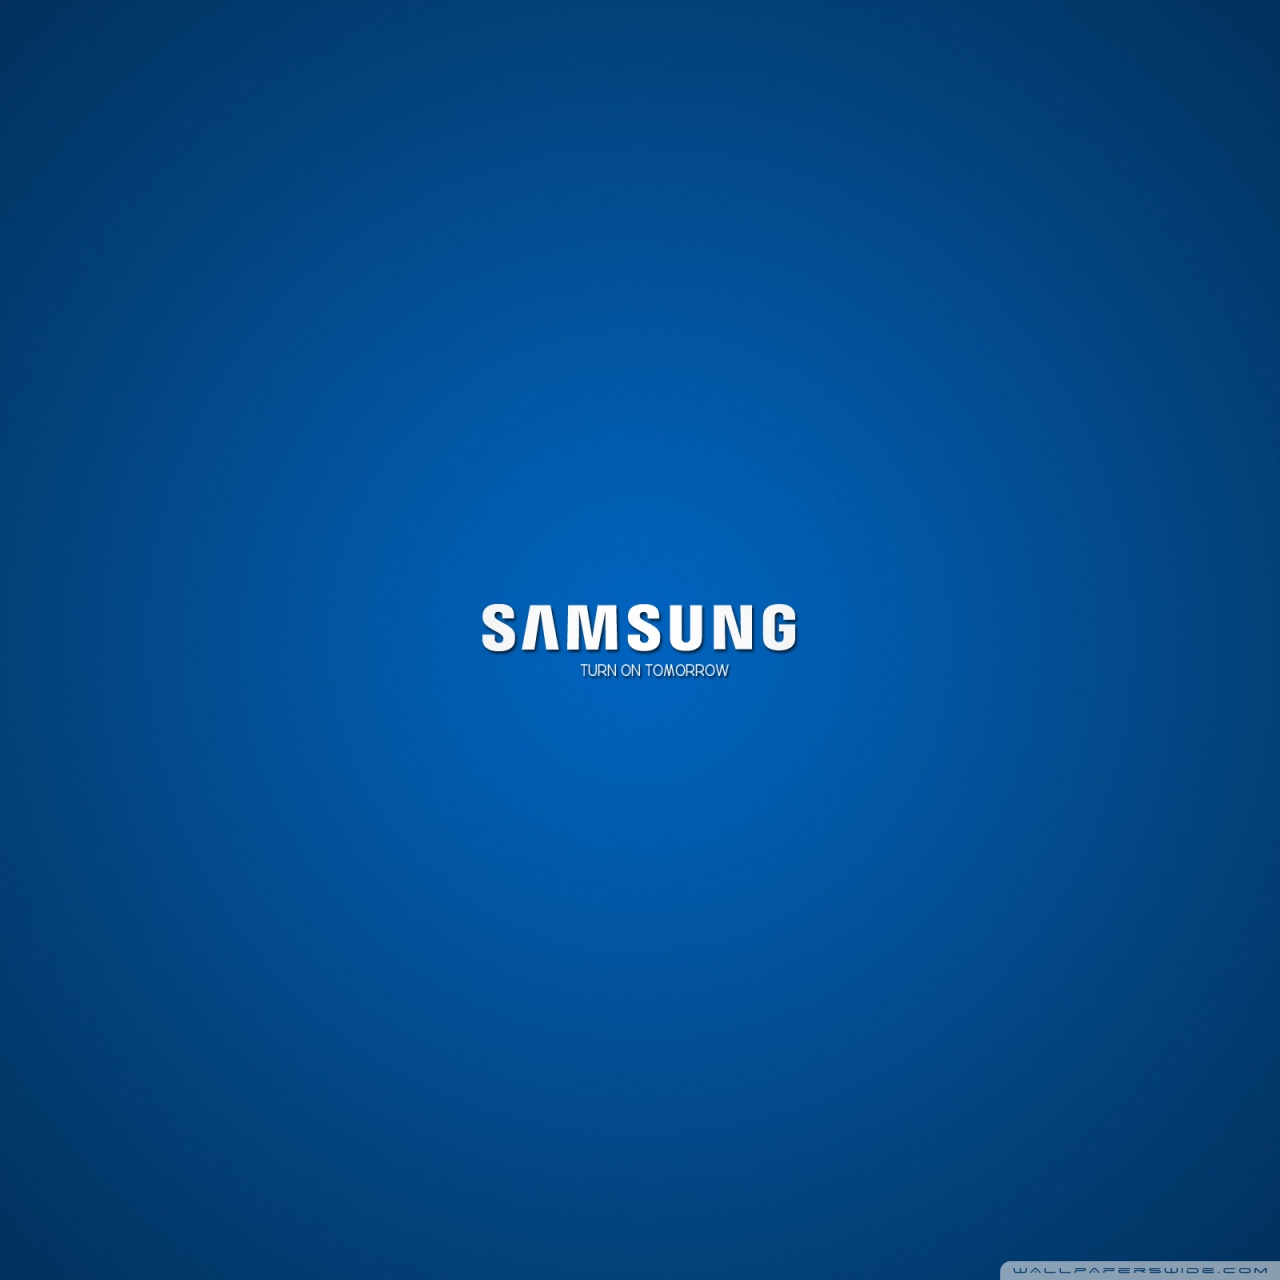 Samsung Turn On Tomorrow 4K HD Desktop Wallpaper for 4K